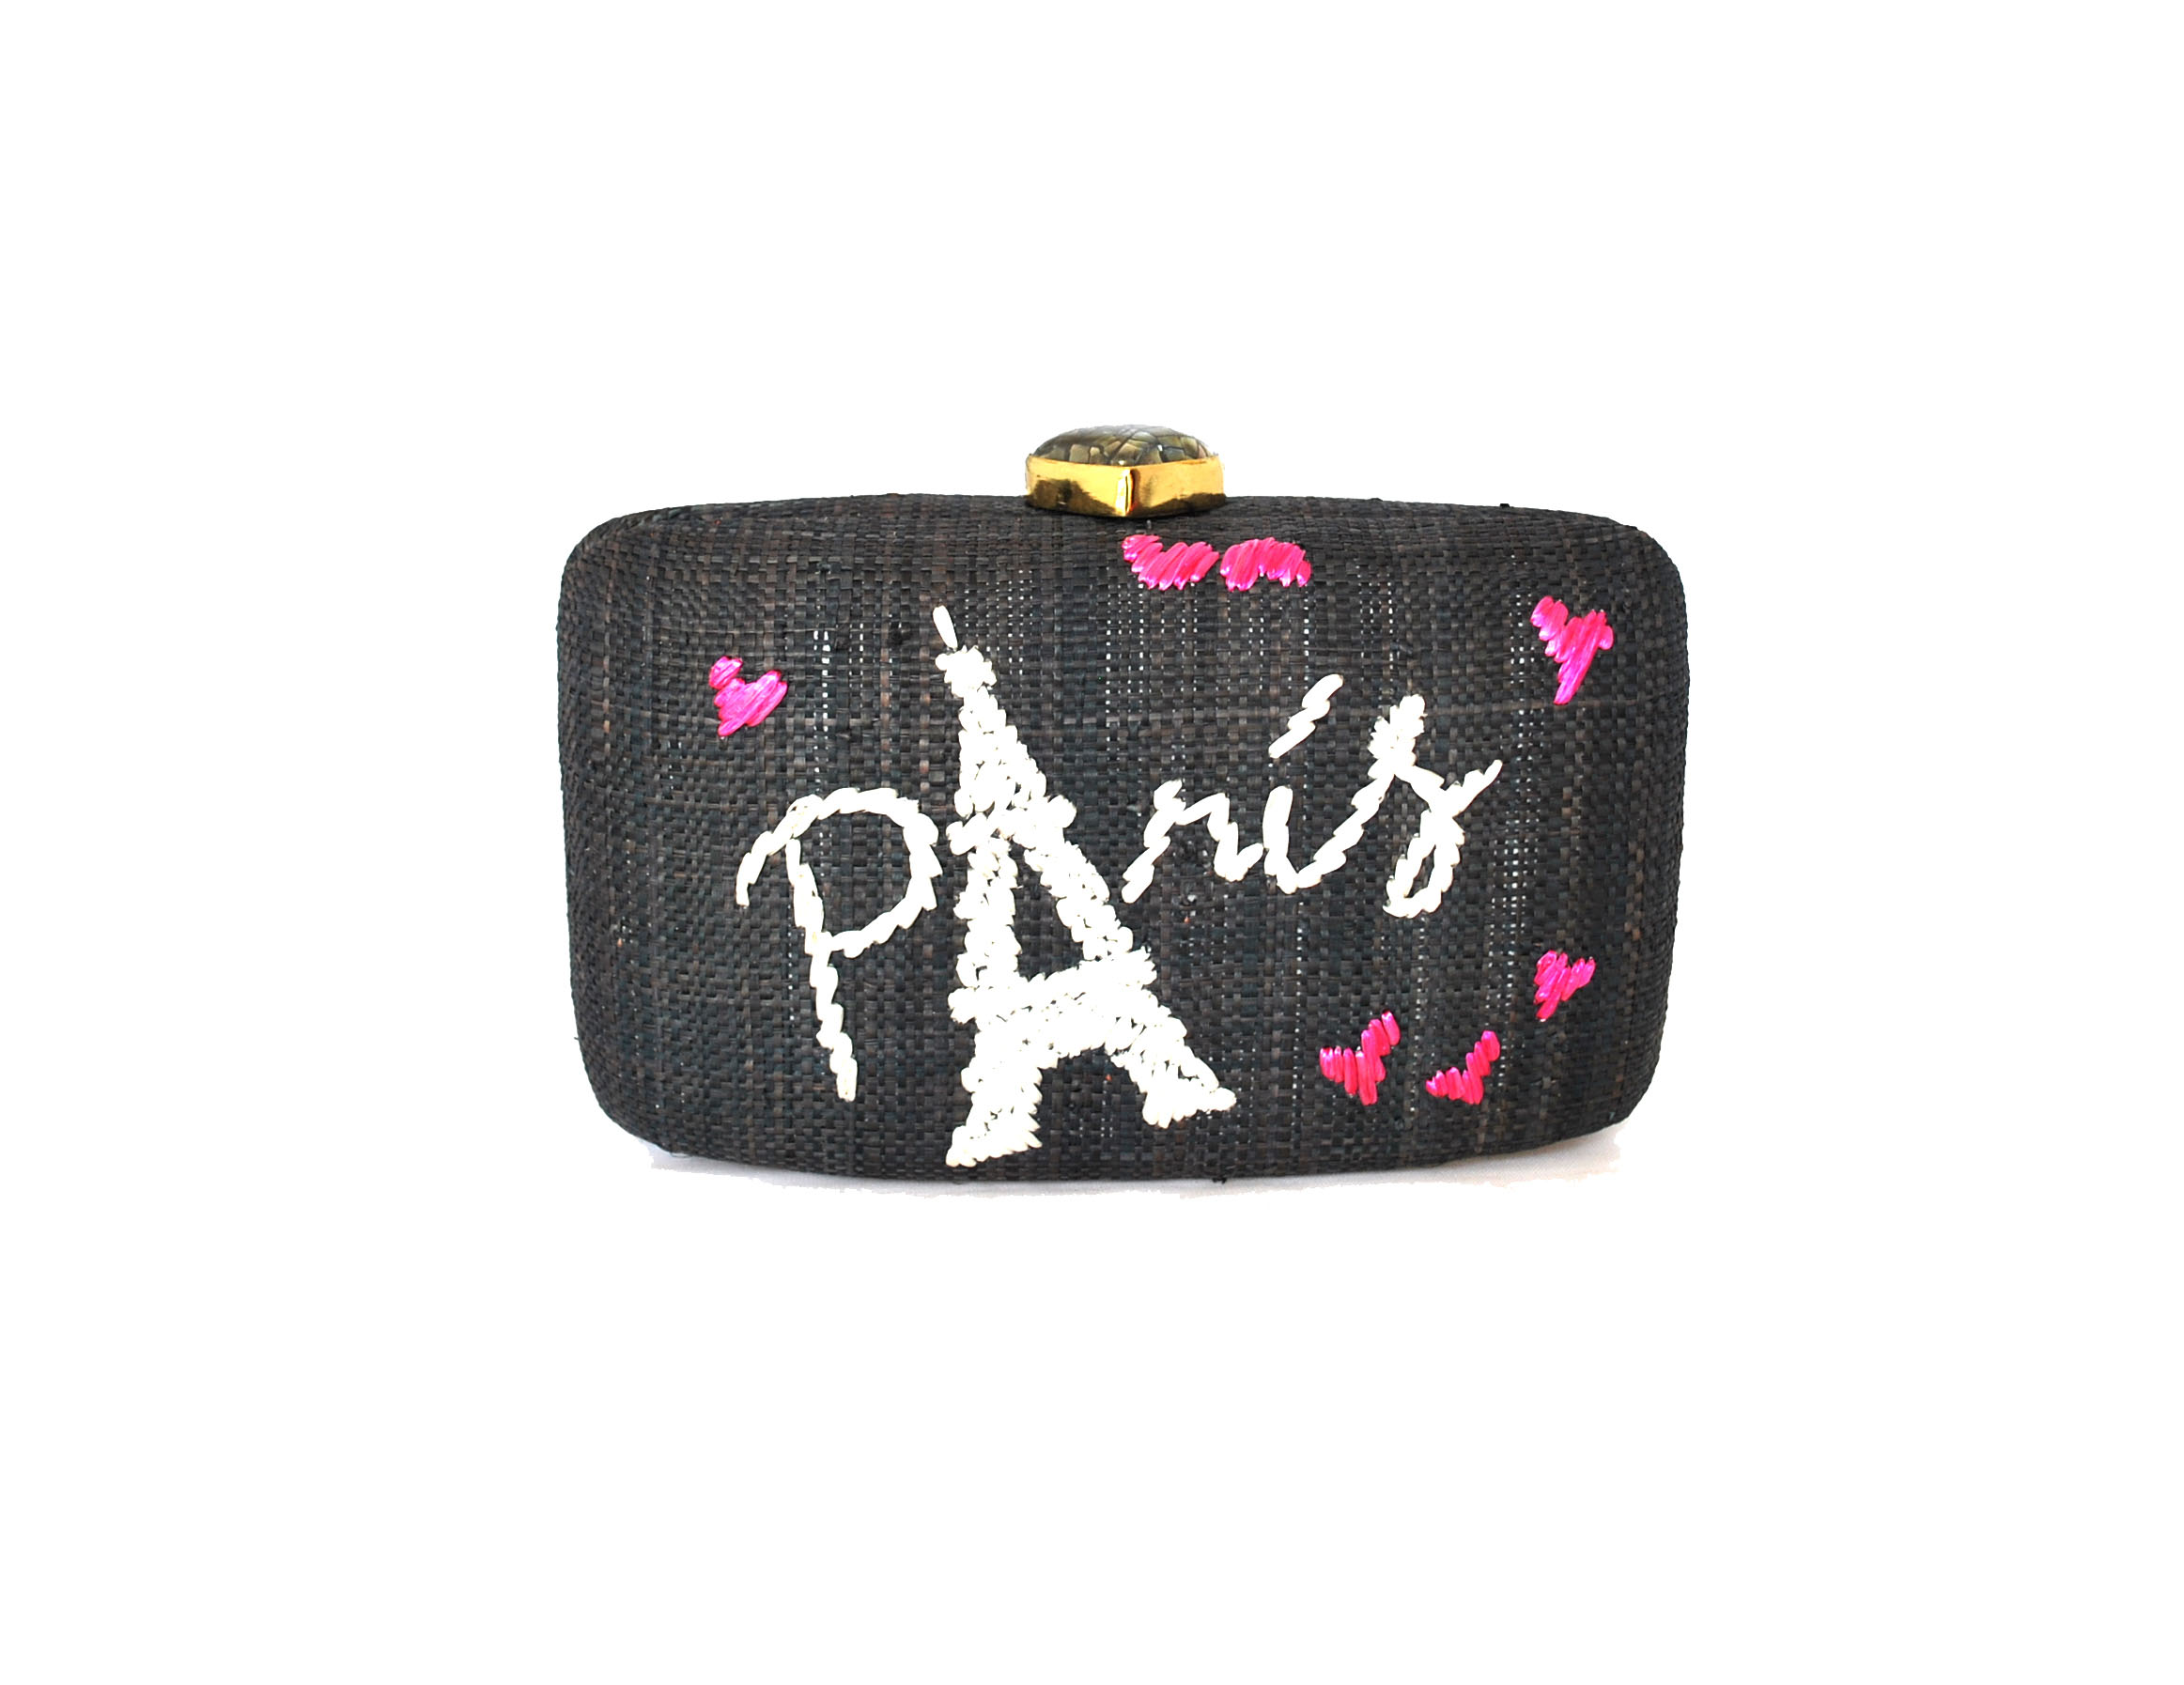 PARIS CLUTCH | Kayu Design